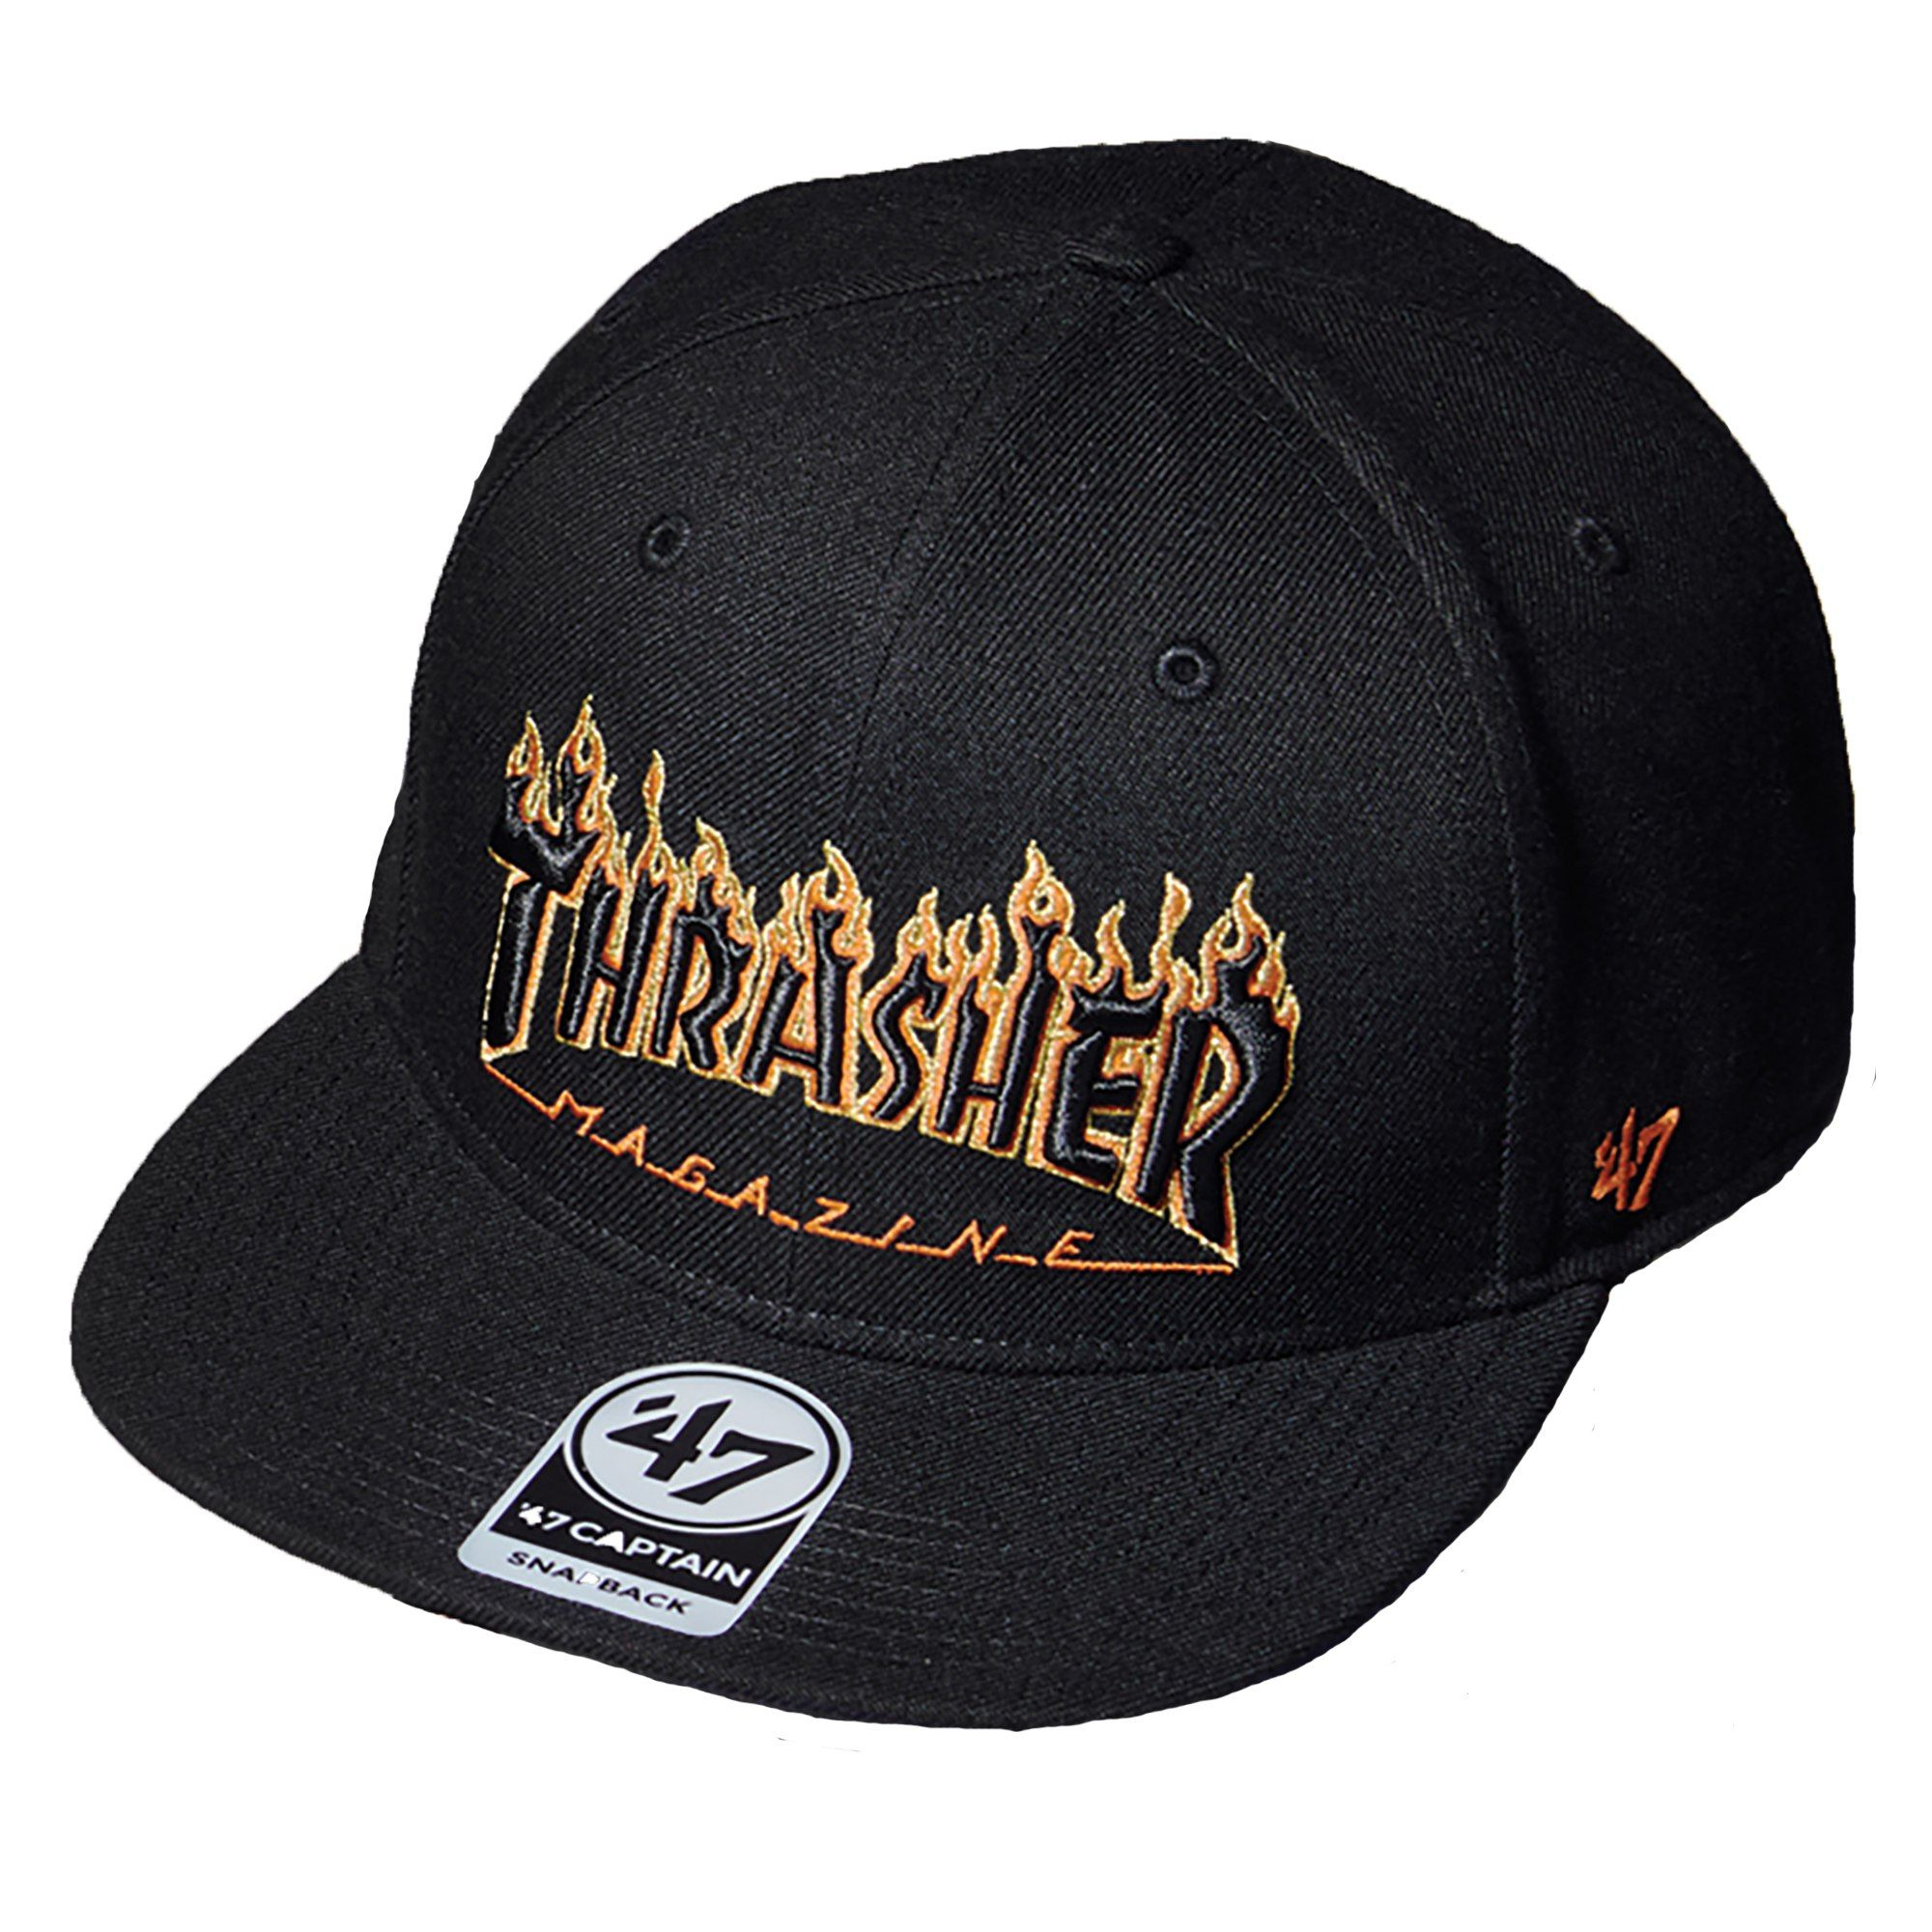 566b4a83 Men's San Francisco Giants Black Thrasher Snapback Cap | S.F. GEAR ...